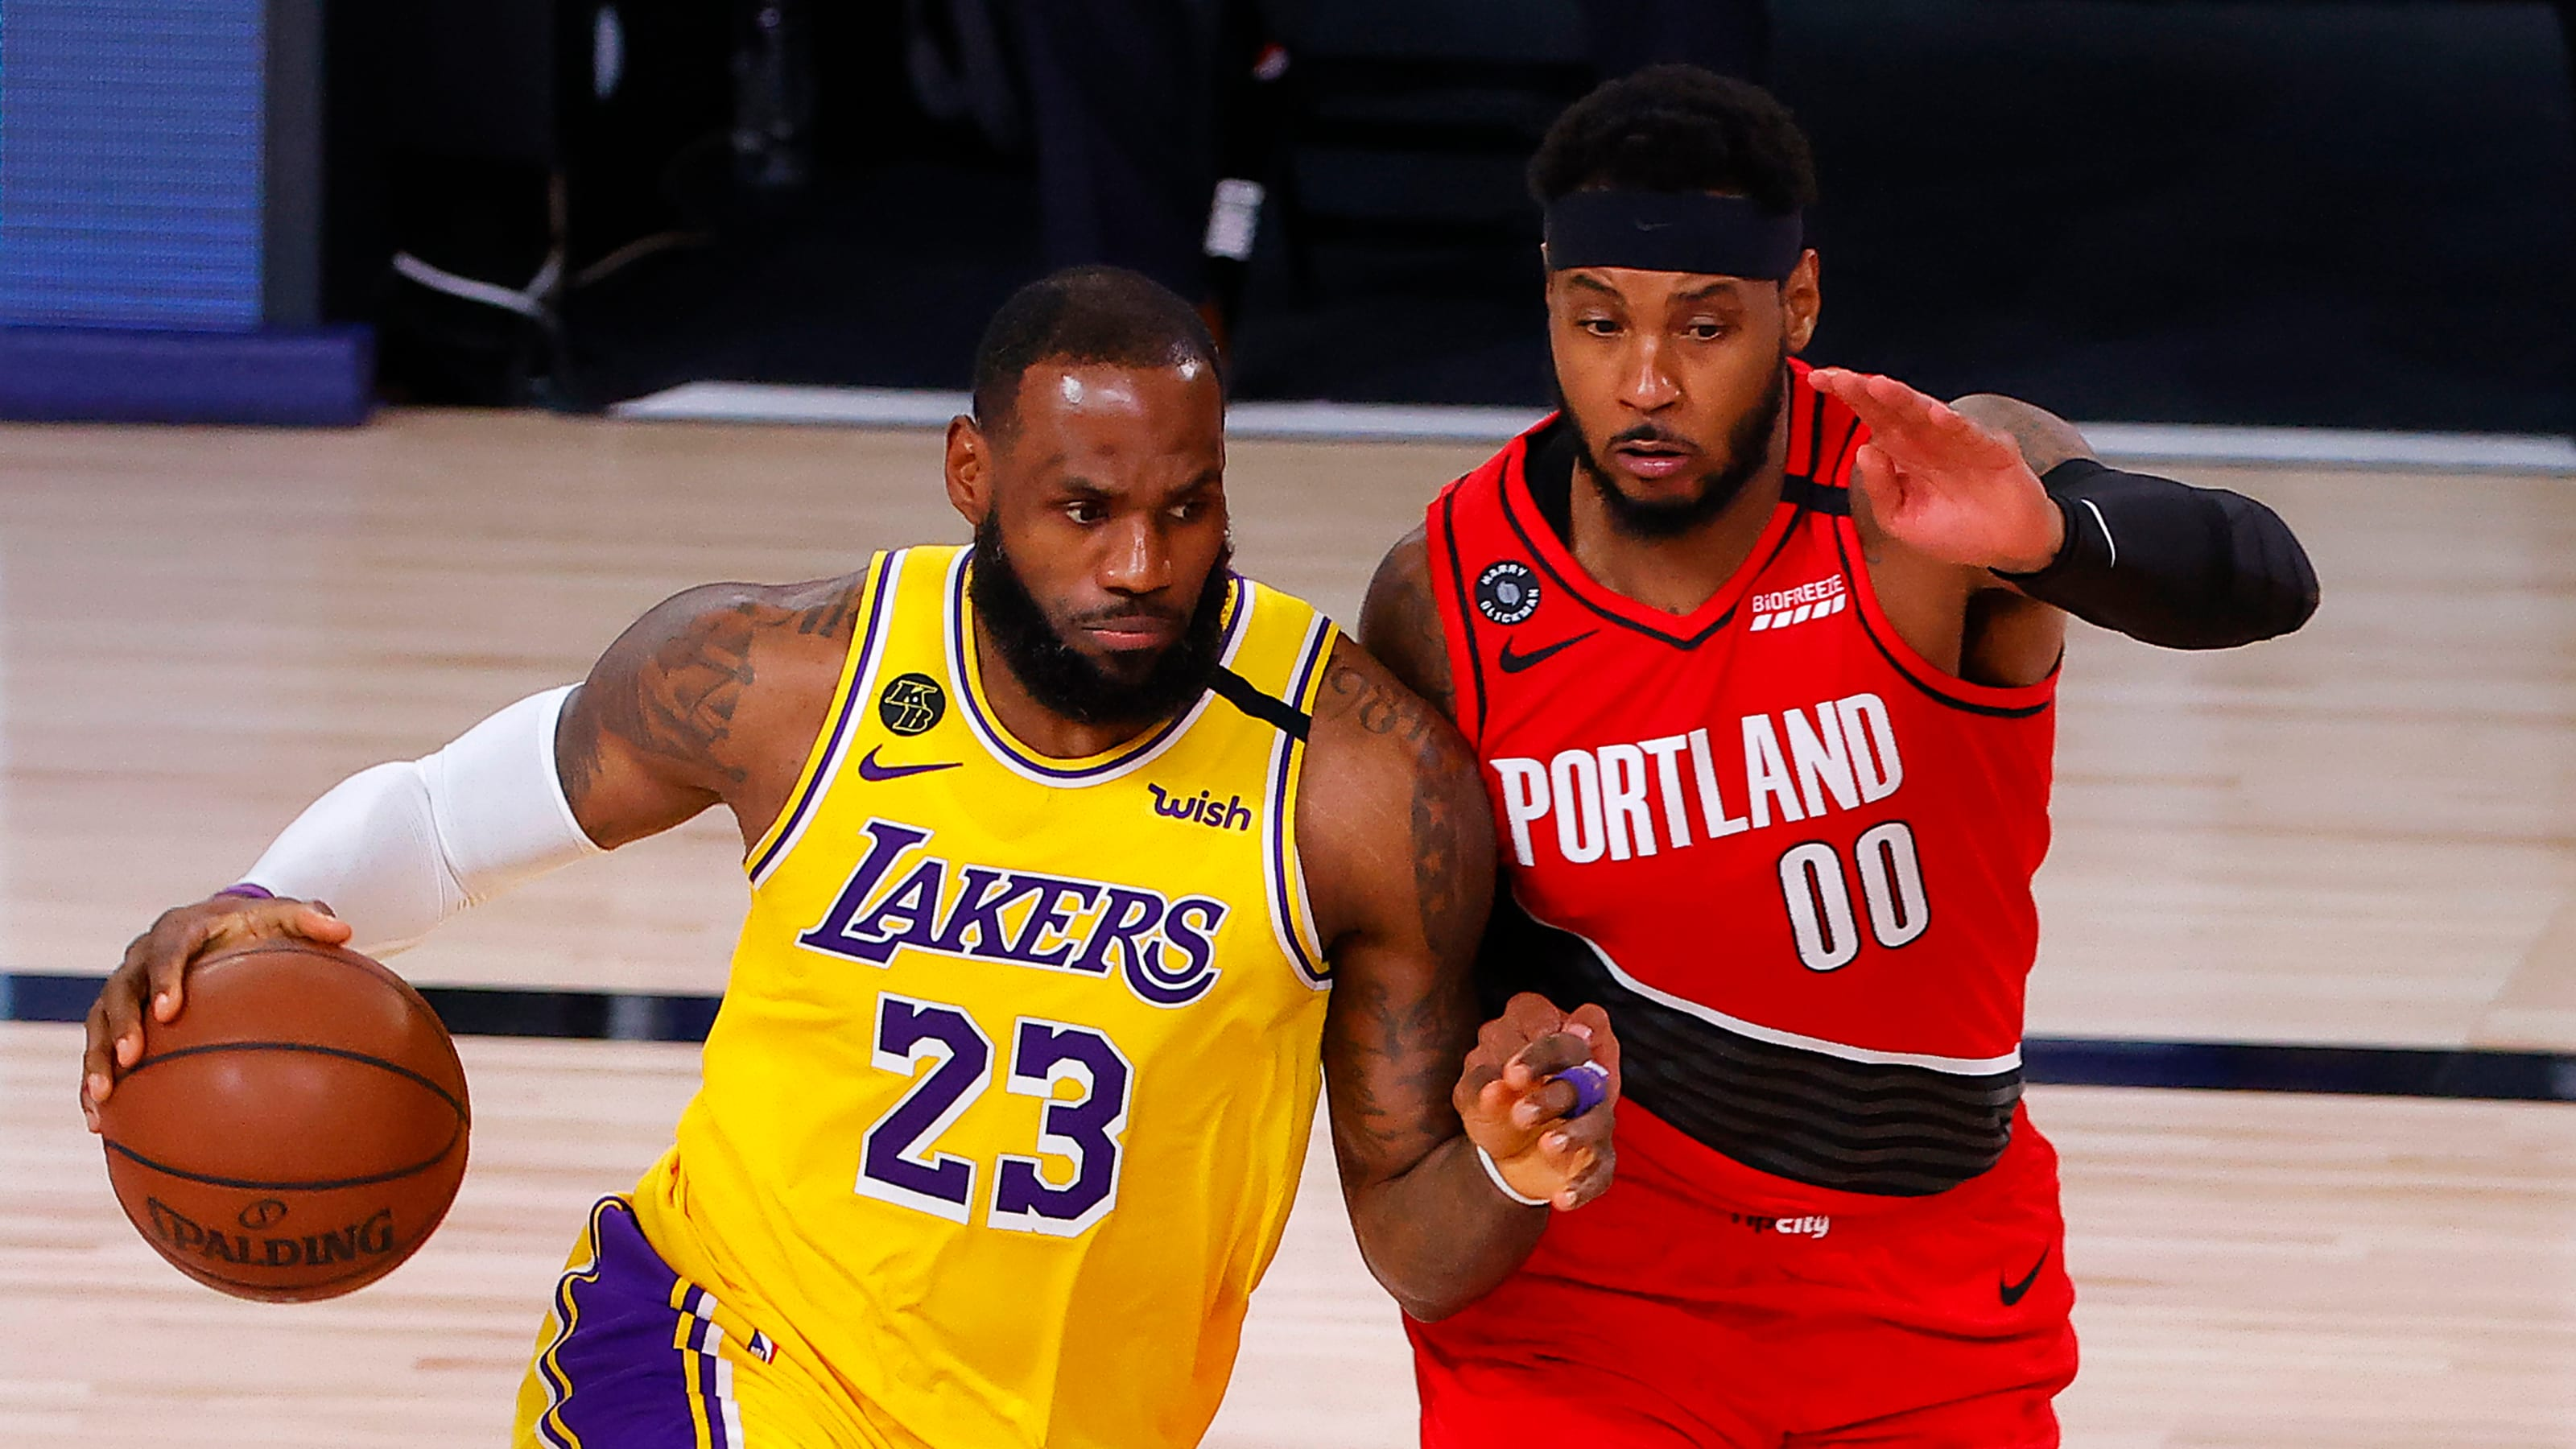 Portland Trail Blazers Vs Los Angeles Lakers Nba Playoffs Schedule Tv Times And Where To Watch Live In India